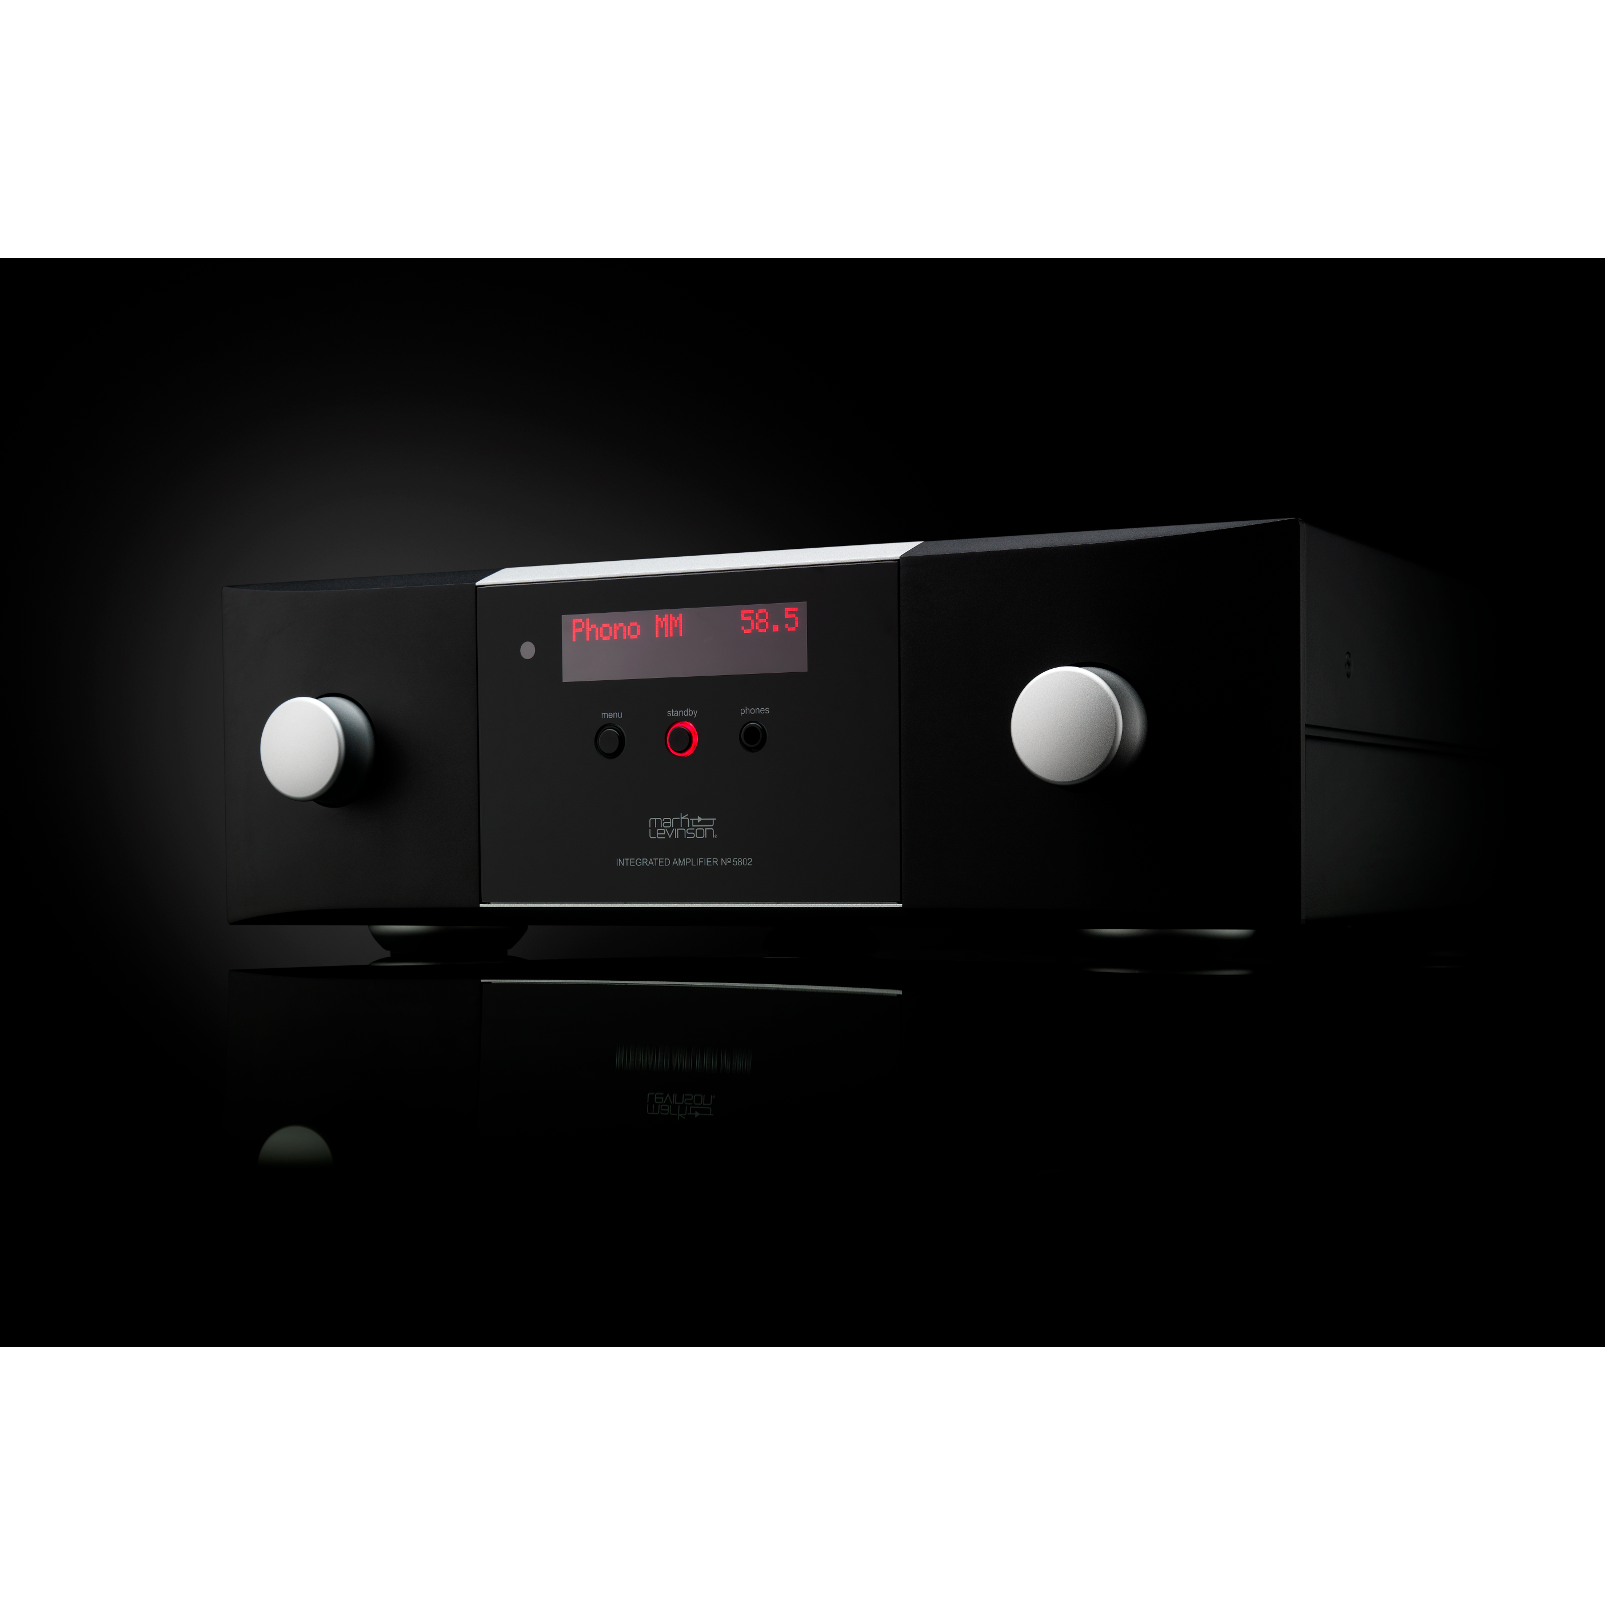 № 5805 - Black / Silver - Integrated Amplifier for Digital and Analog sources - Hero